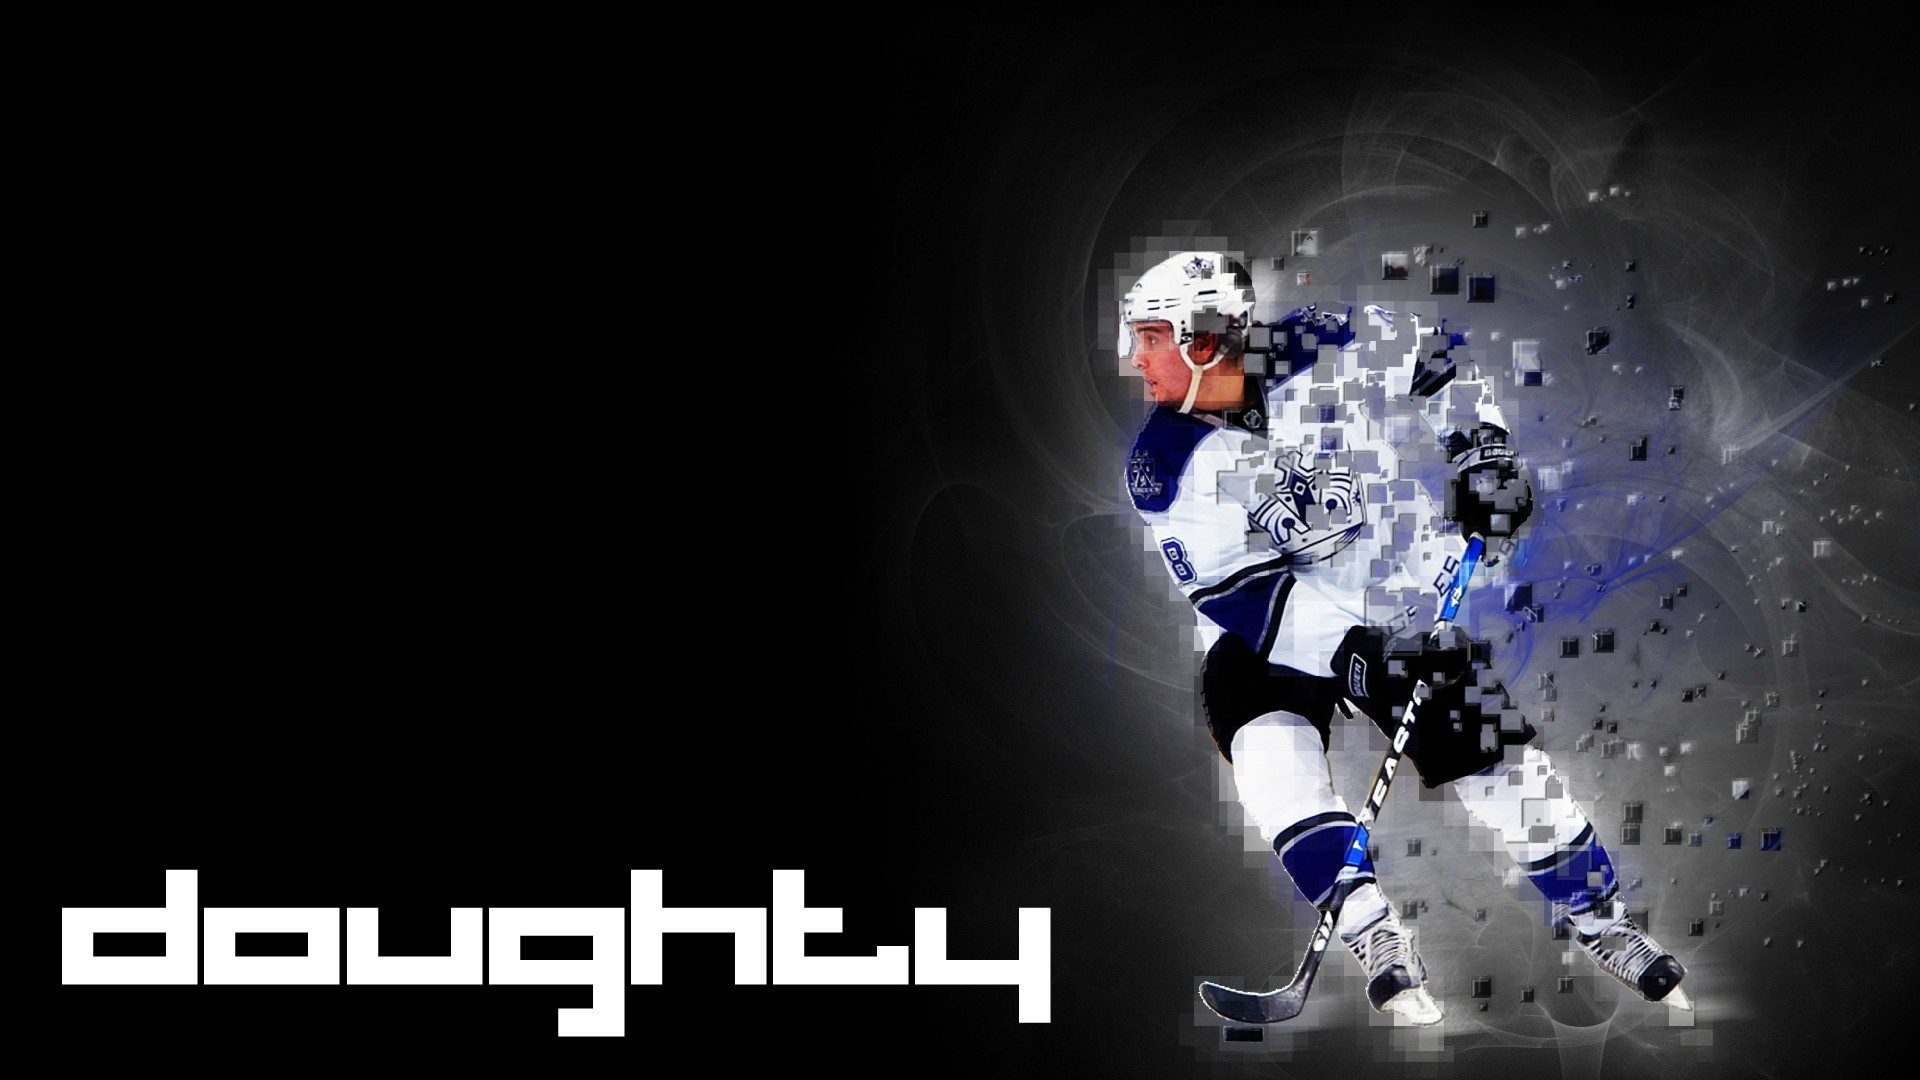 Hockey player of los angeles Drew Doughty wallpapers and images 1920x1080